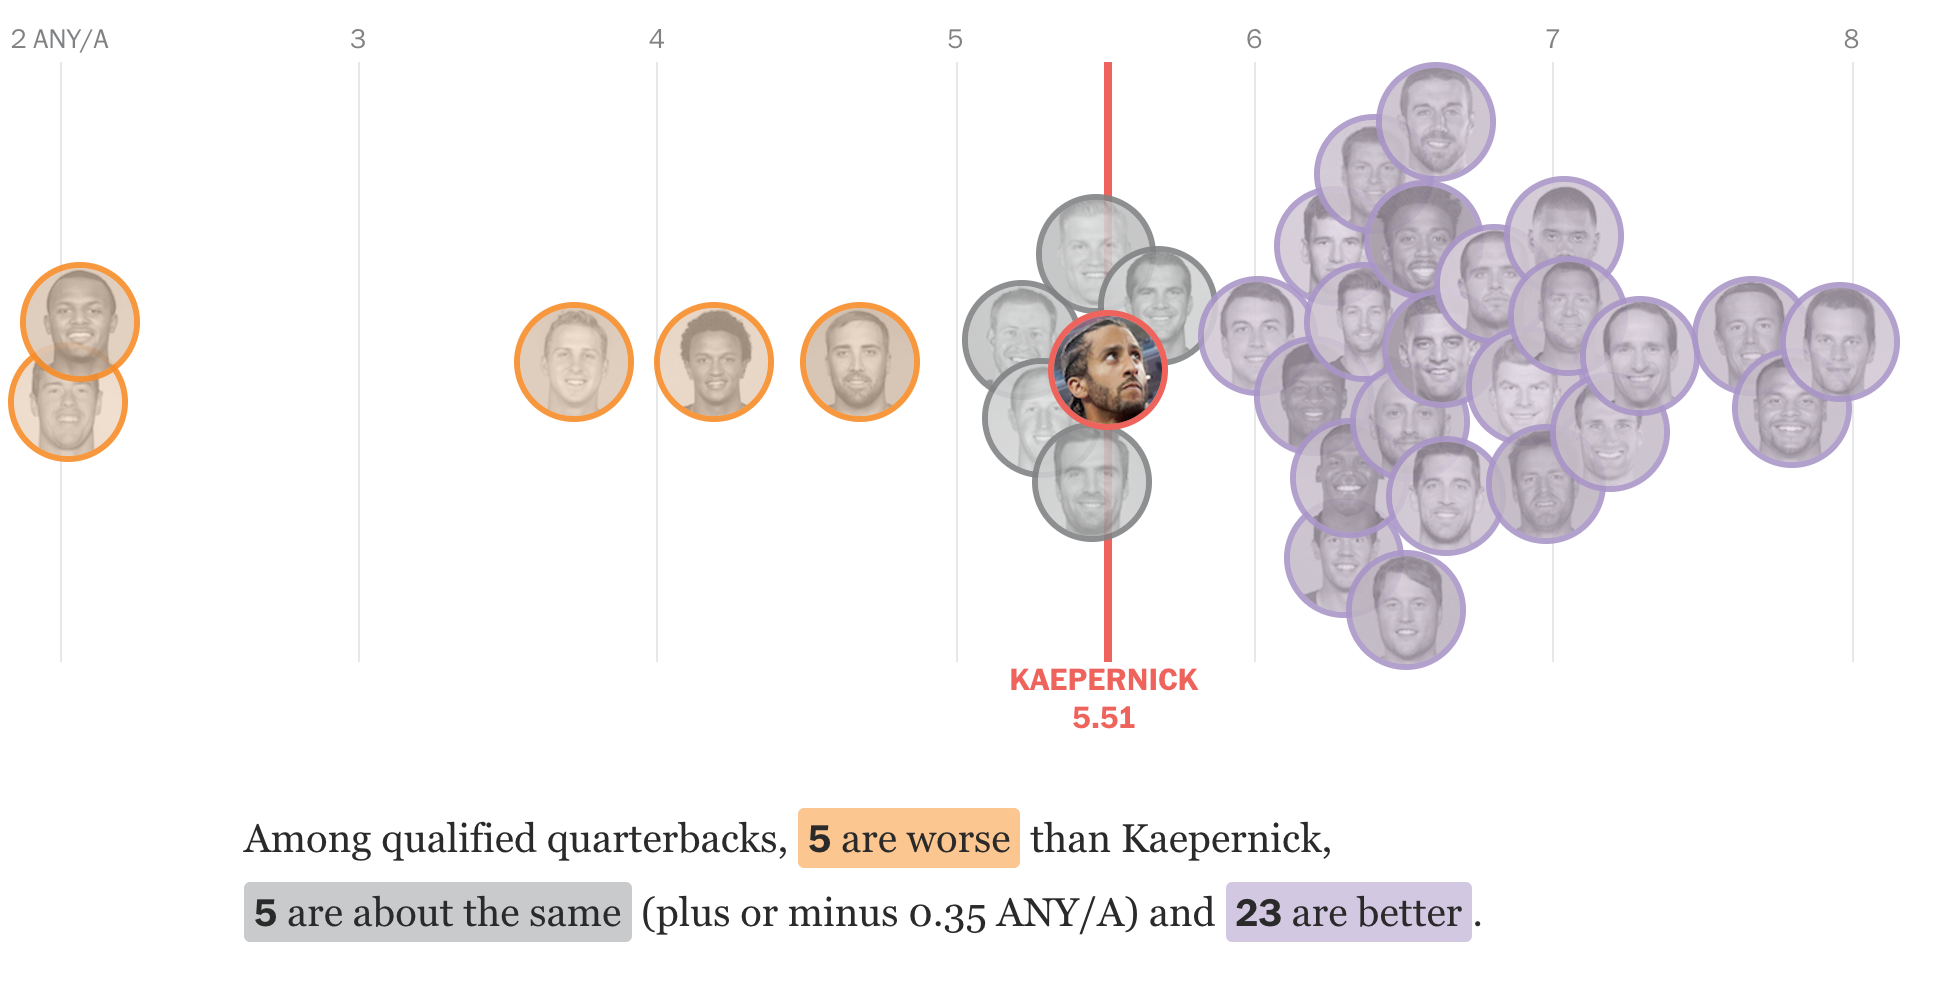 Clearly better than a host of other quarterbacks